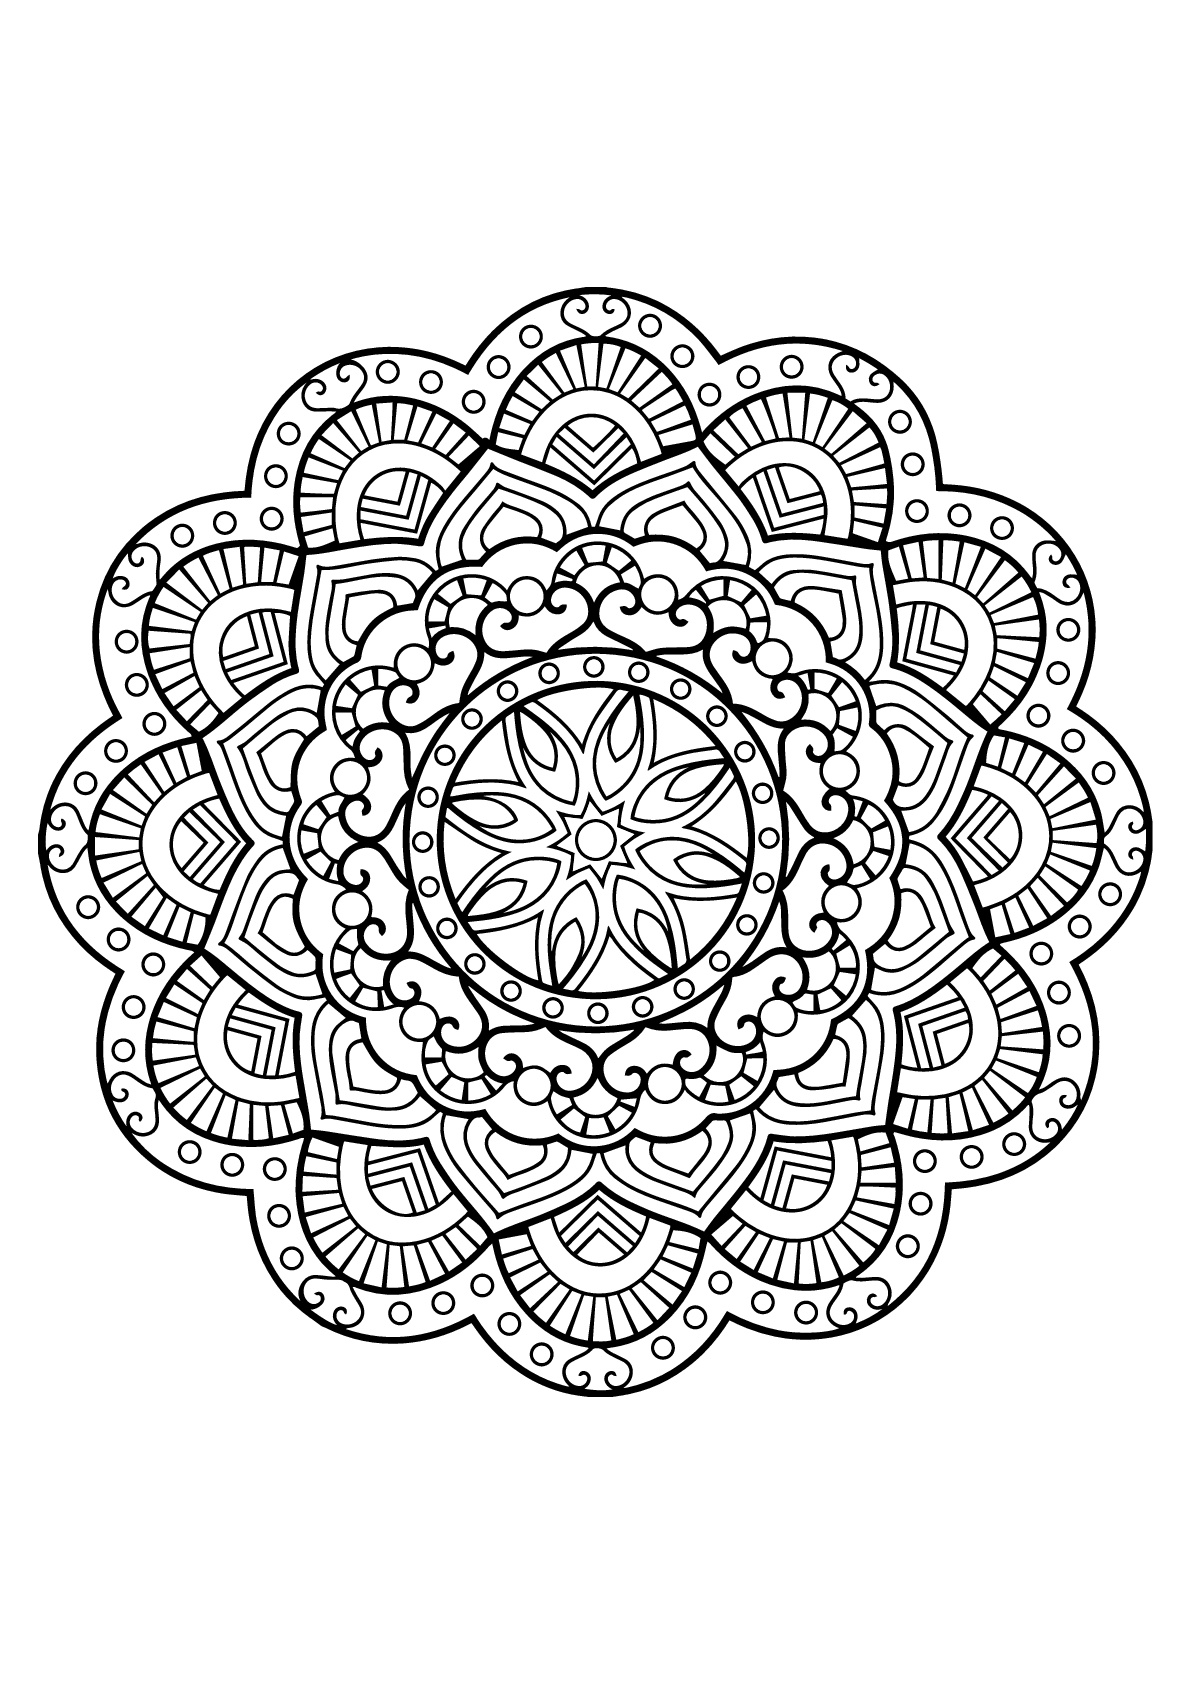 mandalas to color for adults mandala adult coloring pages printable coloring home adults mandalas to color for